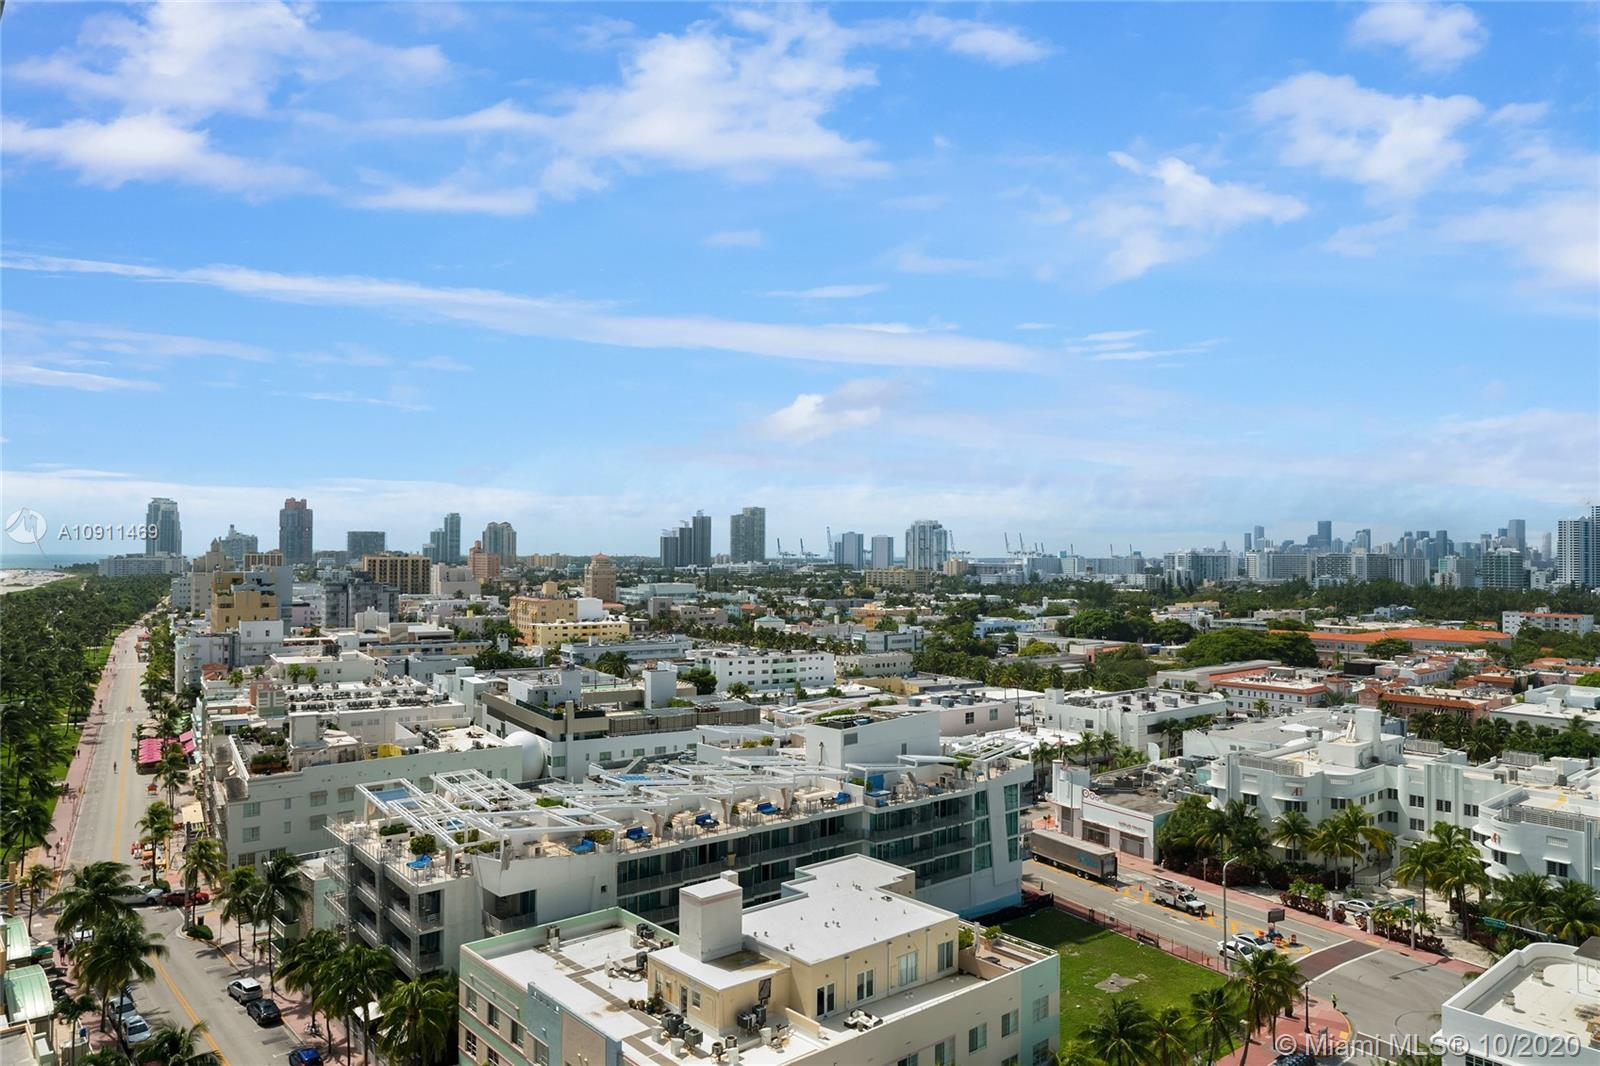 Escape to this top floor renovated and redesigned upper penthouse in the heart of South Beach! UPH-10 offers unparalleled views of the Bay, Ocean Drive and Miami's iconic skyline. Enjoy this residences countless upgrades including top of the line appliances, wine fridge, spacious master suite with walk-in closet, floor to ceiling windows, and two fully renovated bathrooms featuring marble floors, rain head shower and Toto Neorest toilet. This stylish residence is located in the epicenter of all dining, entertainment & shopping spots. 1500 Ocean Drive is full service luxury oceanfront building with 24 hr doorman/security, on-site management, full complimentary beach service with chaise lounge chairs and cabanas, 1 assigned parking space with valet services, and extra storage & bike area.